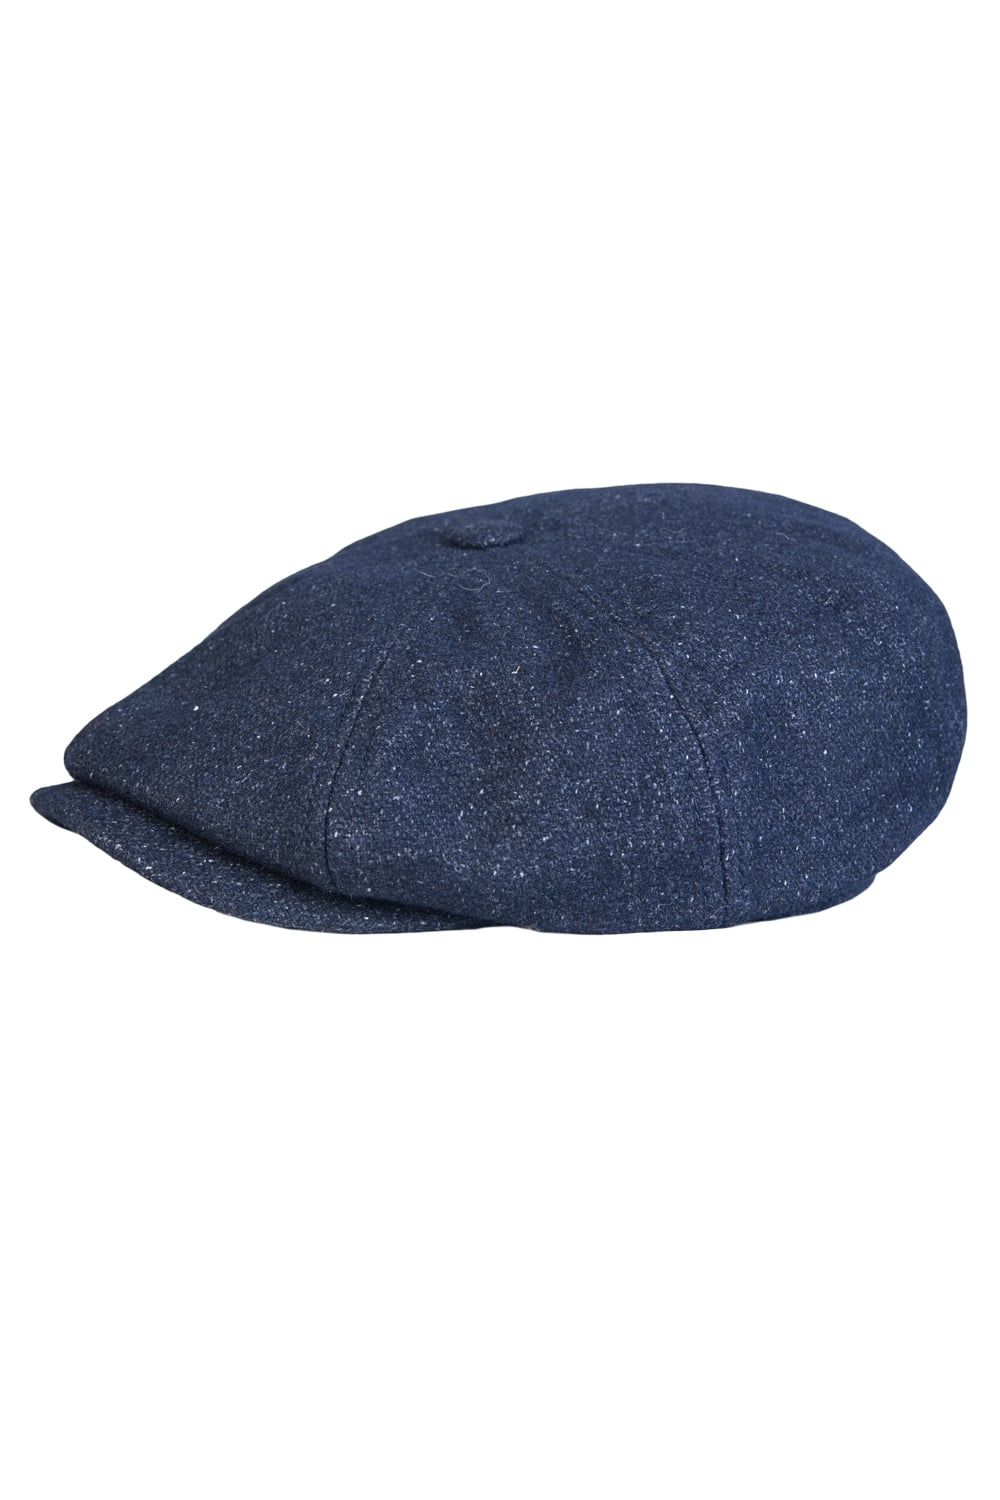 e88f3d4c8586 Ted Baker Flat Cap XA7M XN22 GLADSTN - Accessories from Sage Clothing UK